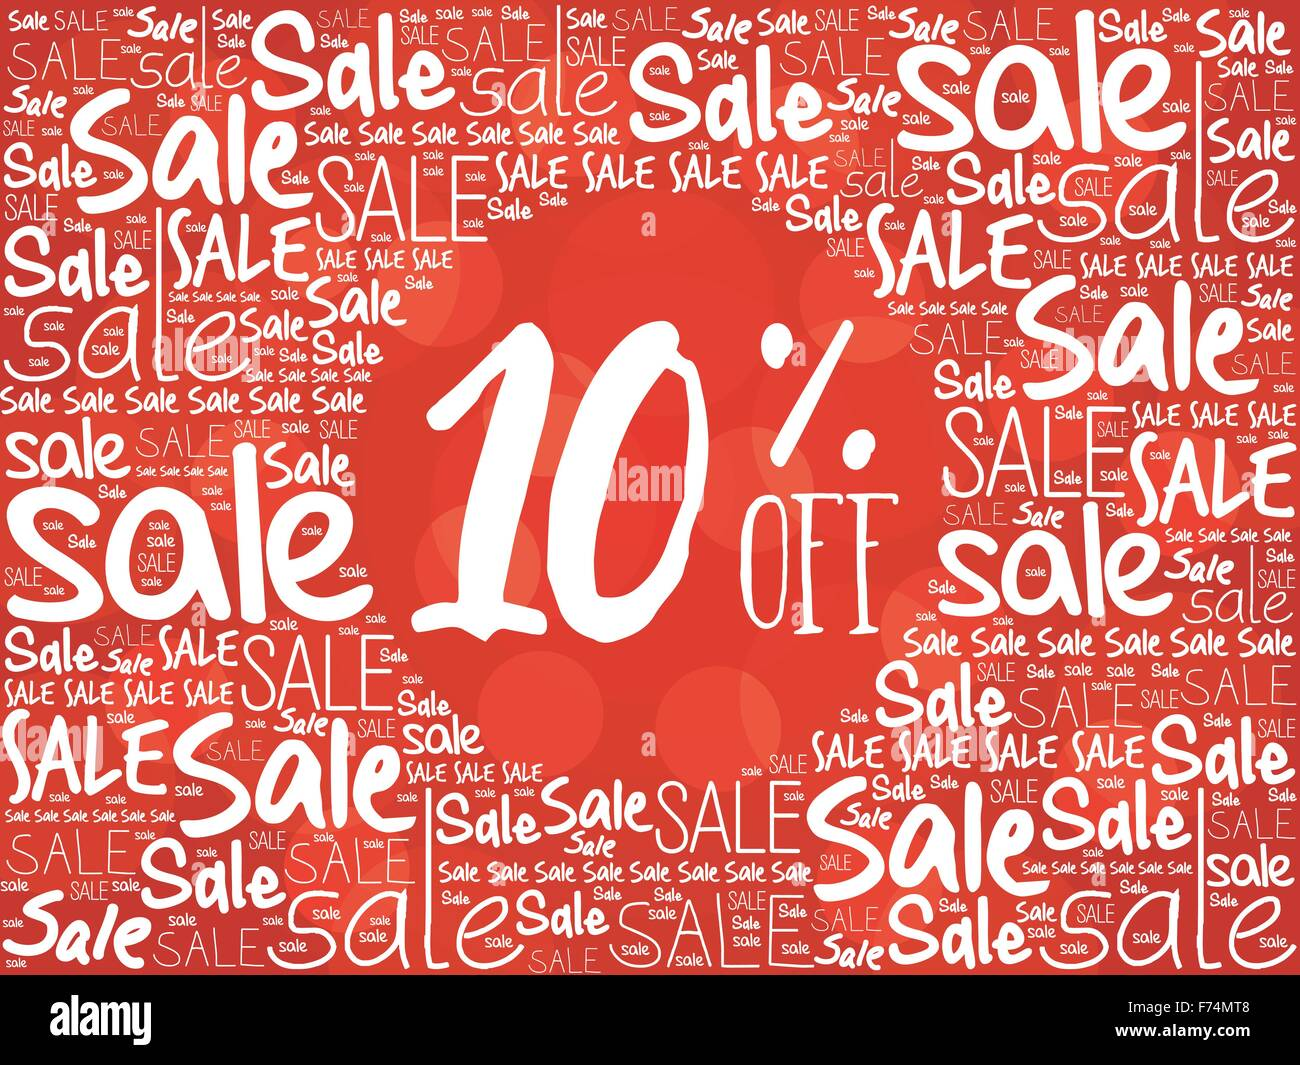 10% OFF word cloud background - Stock Image